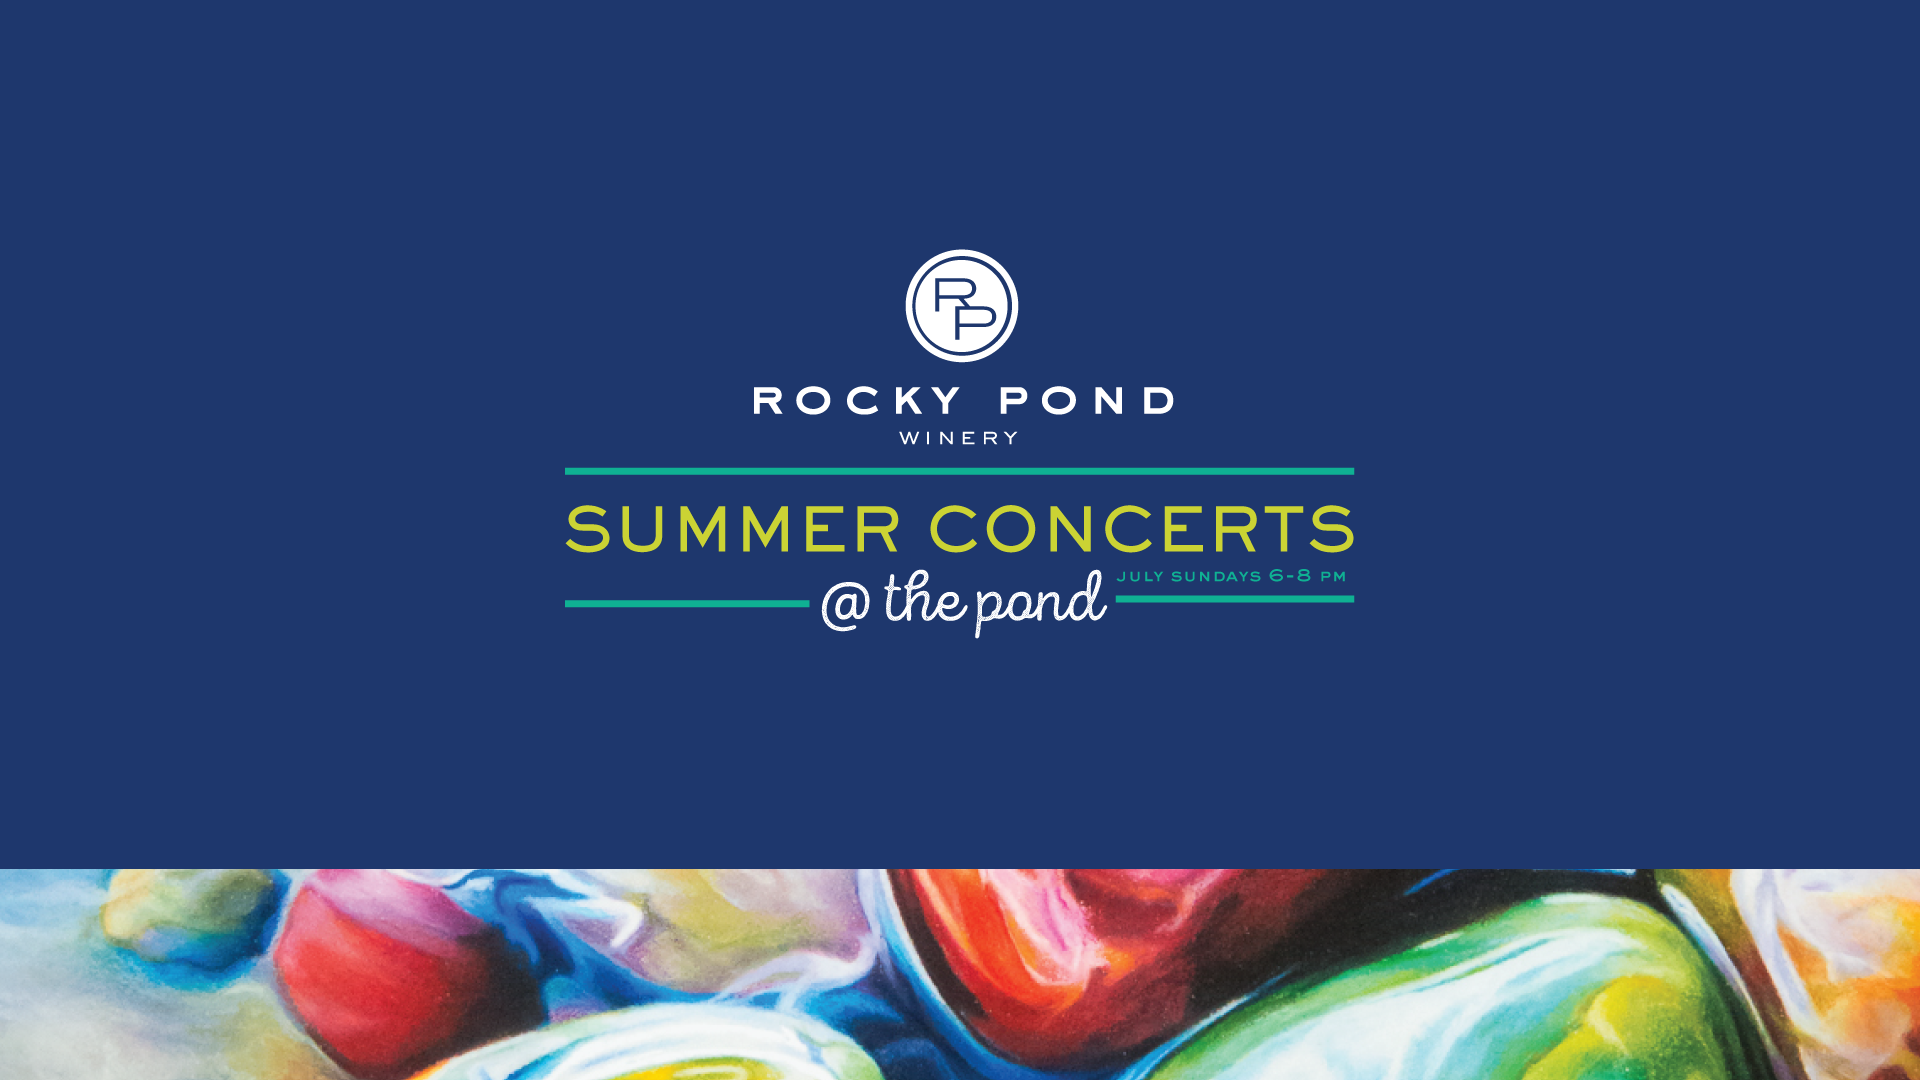 Summer Concerts @ The Pond 2017